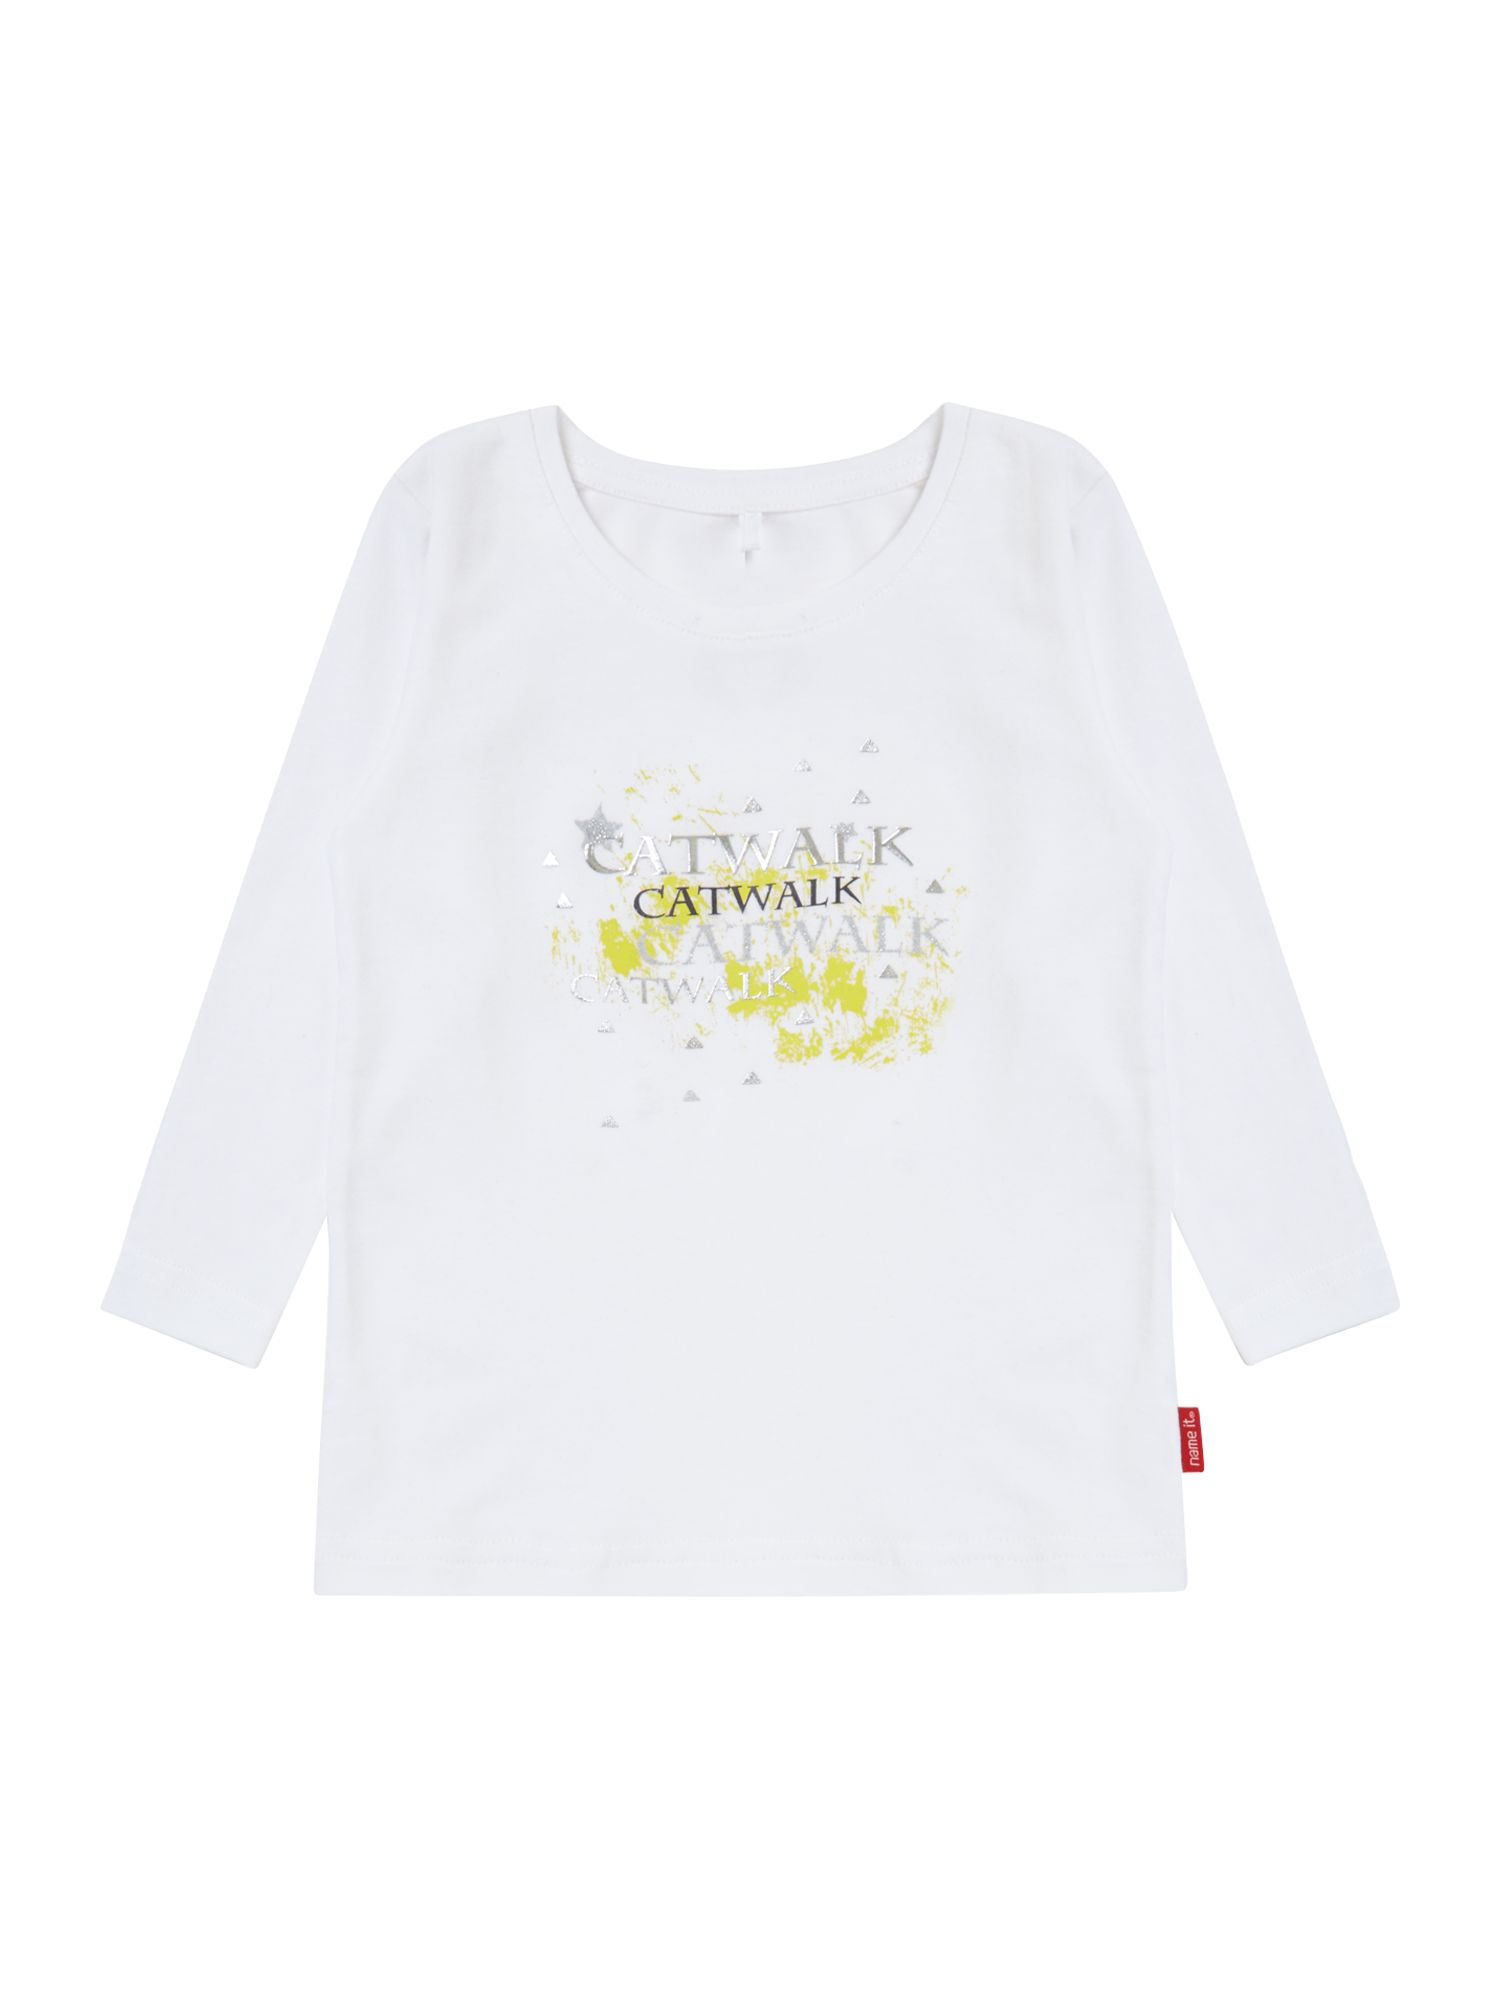 Girls catwalk graphic t-shirt